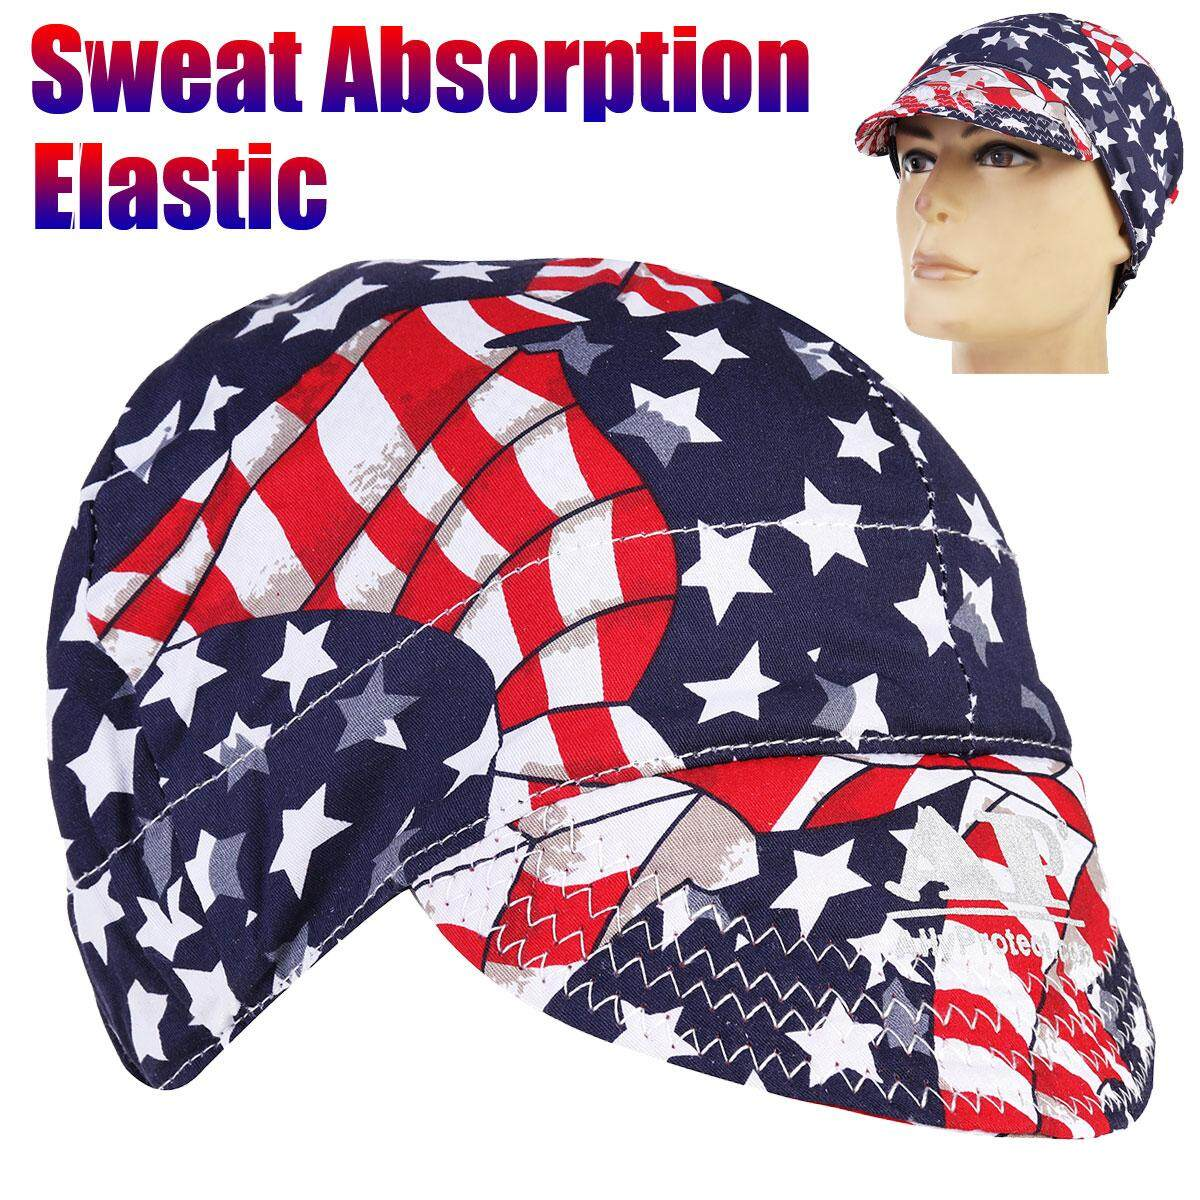 2pcs Universal Sweat Absorption Elastic Welding Welder Hat Cap Cotton Patriotic - intl